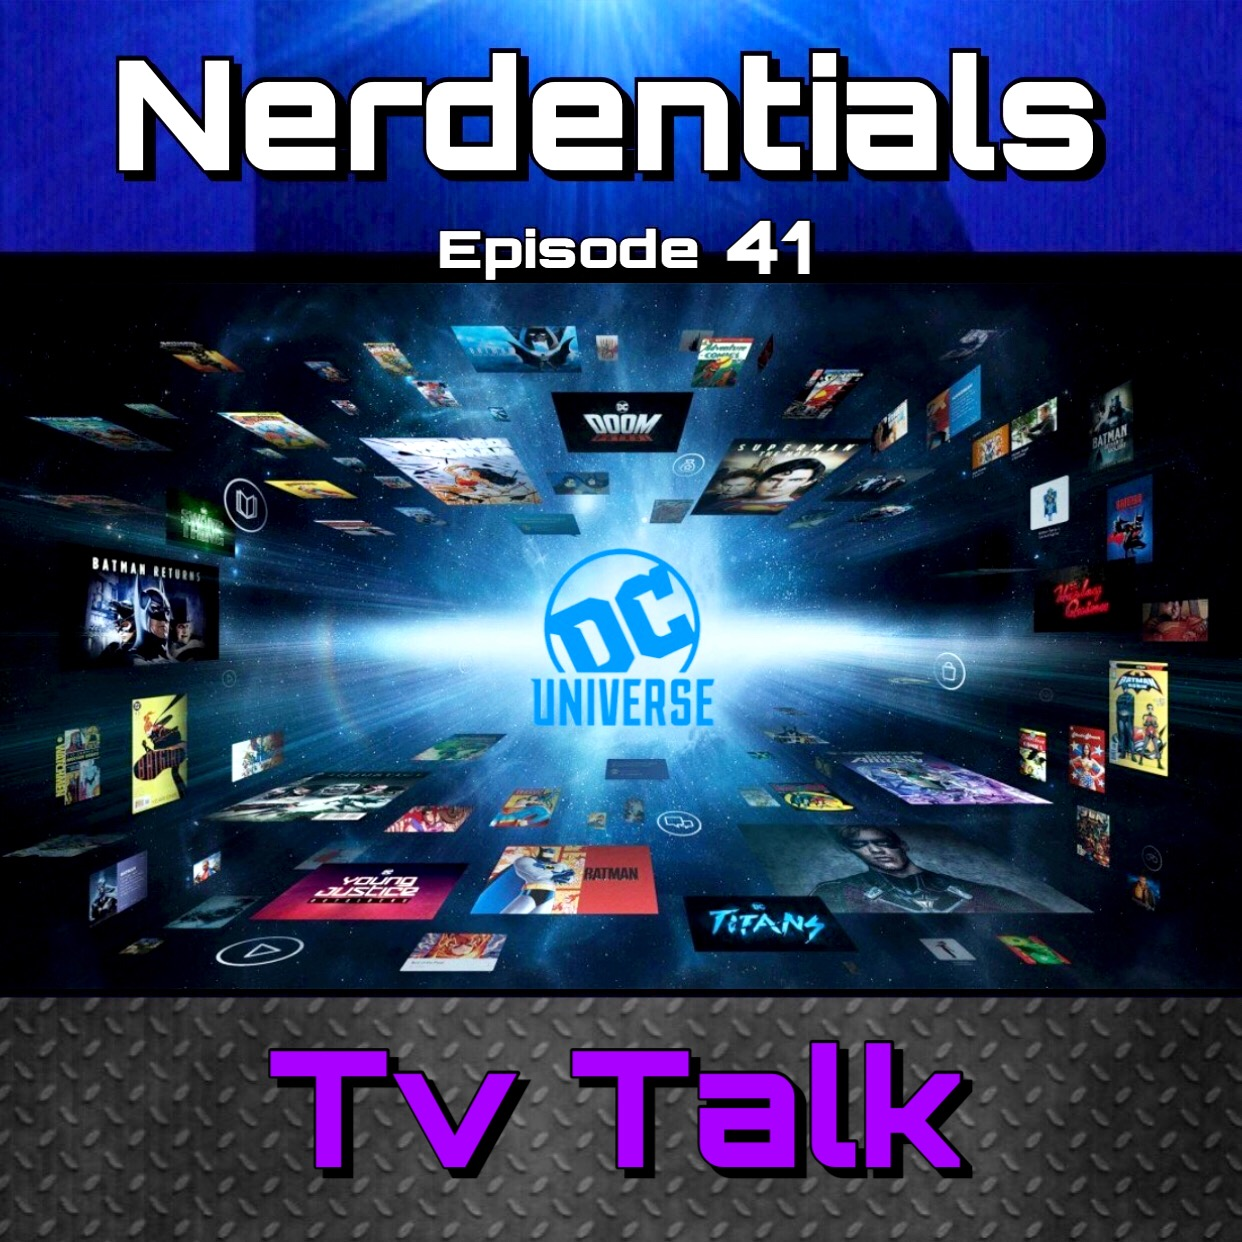 - Welcome to Nerdentials! Your weekly dose of the nerdy essentials. Covering Film, TV, Video Games and Comics.This week your Hosts Joe, Matt and Nick discuss the upcoming streaming service being released by DC known as DC Universe. Then we discuss the new Original series Titans being produced exclusively for said service.